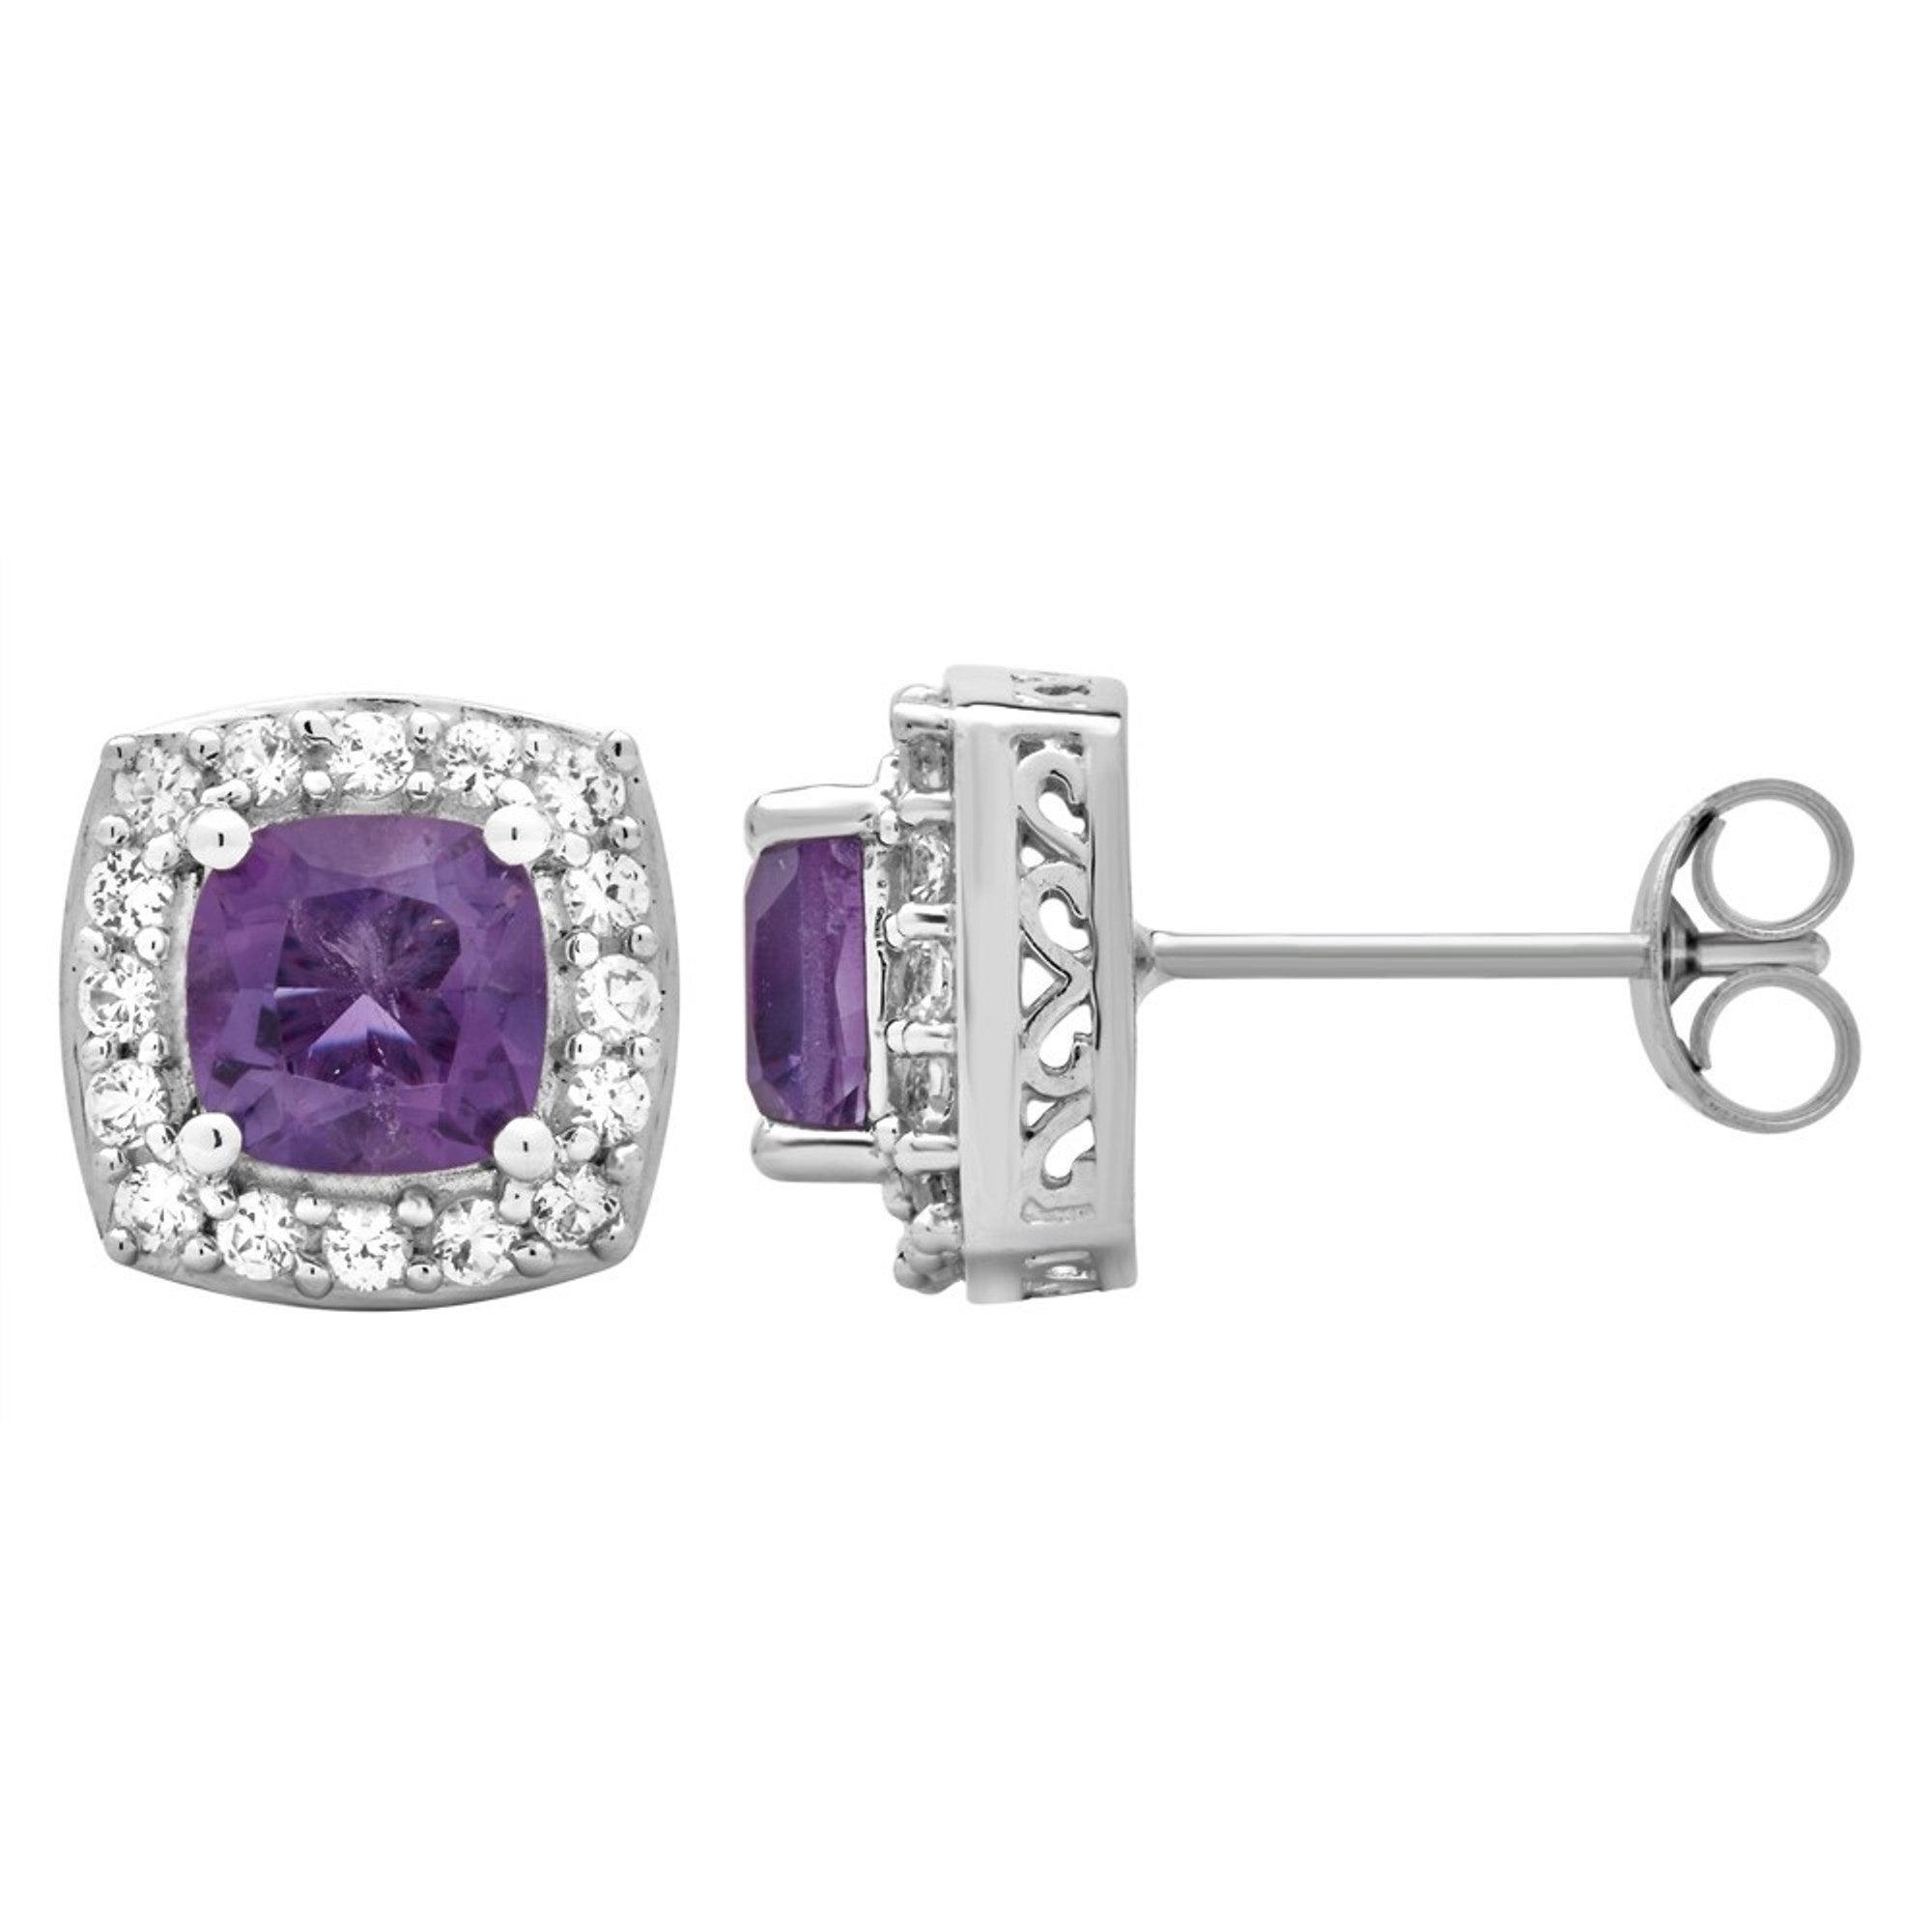 Classic Stud 1.50 Cttw Cushion Cut Amethyst & Round Cut White Sapphire Earrings In Sterling Silver